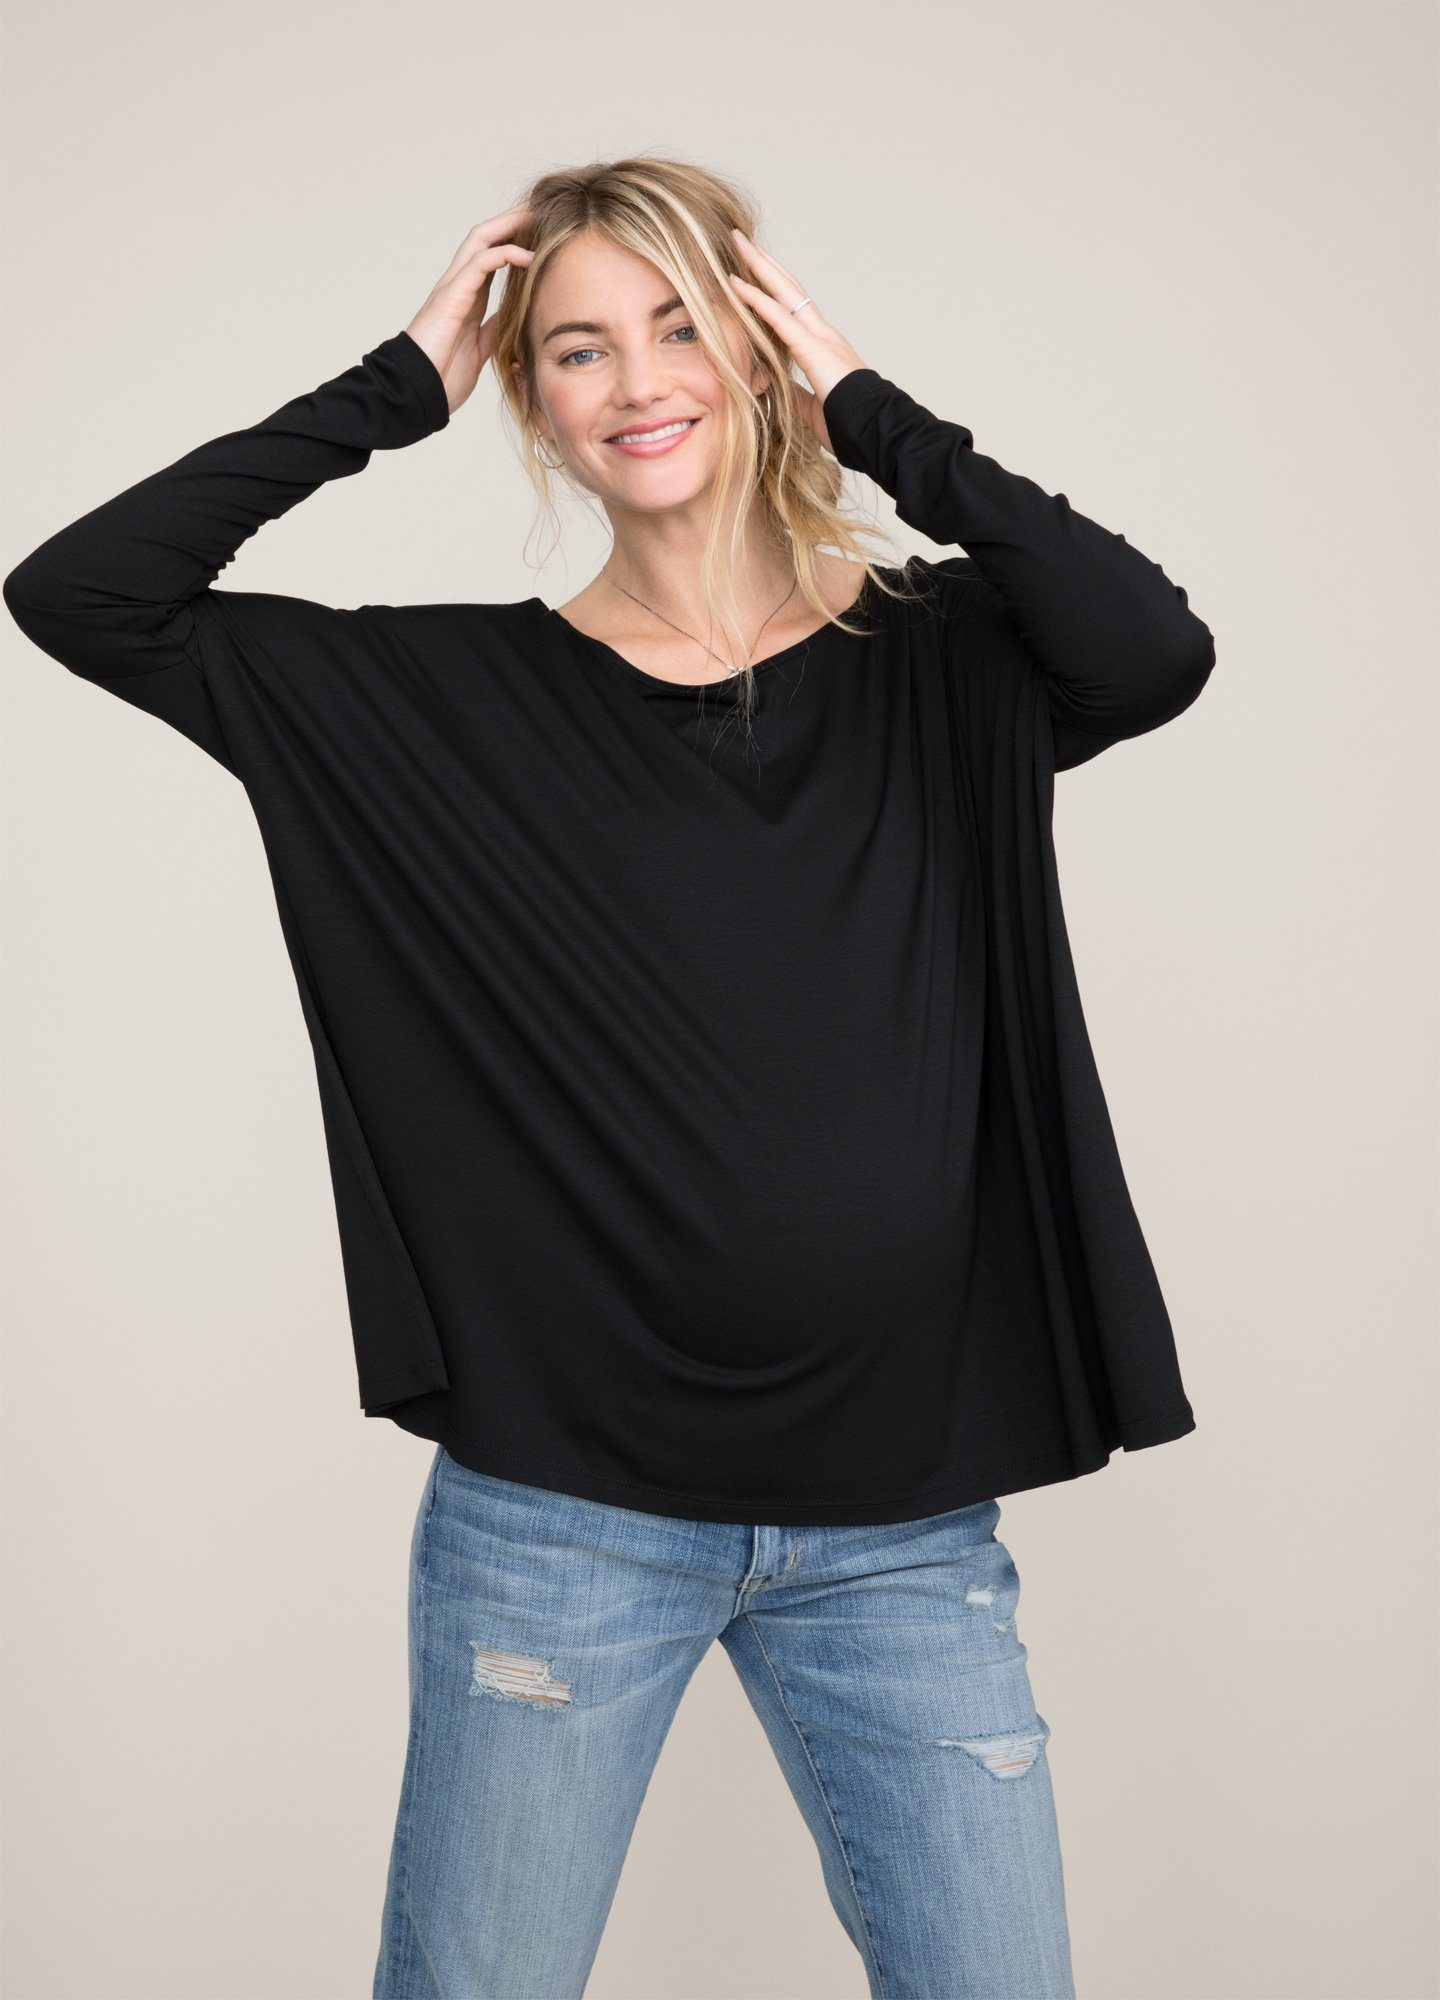 HATCH Maternity The Longsleeve Tee, black, Size 1